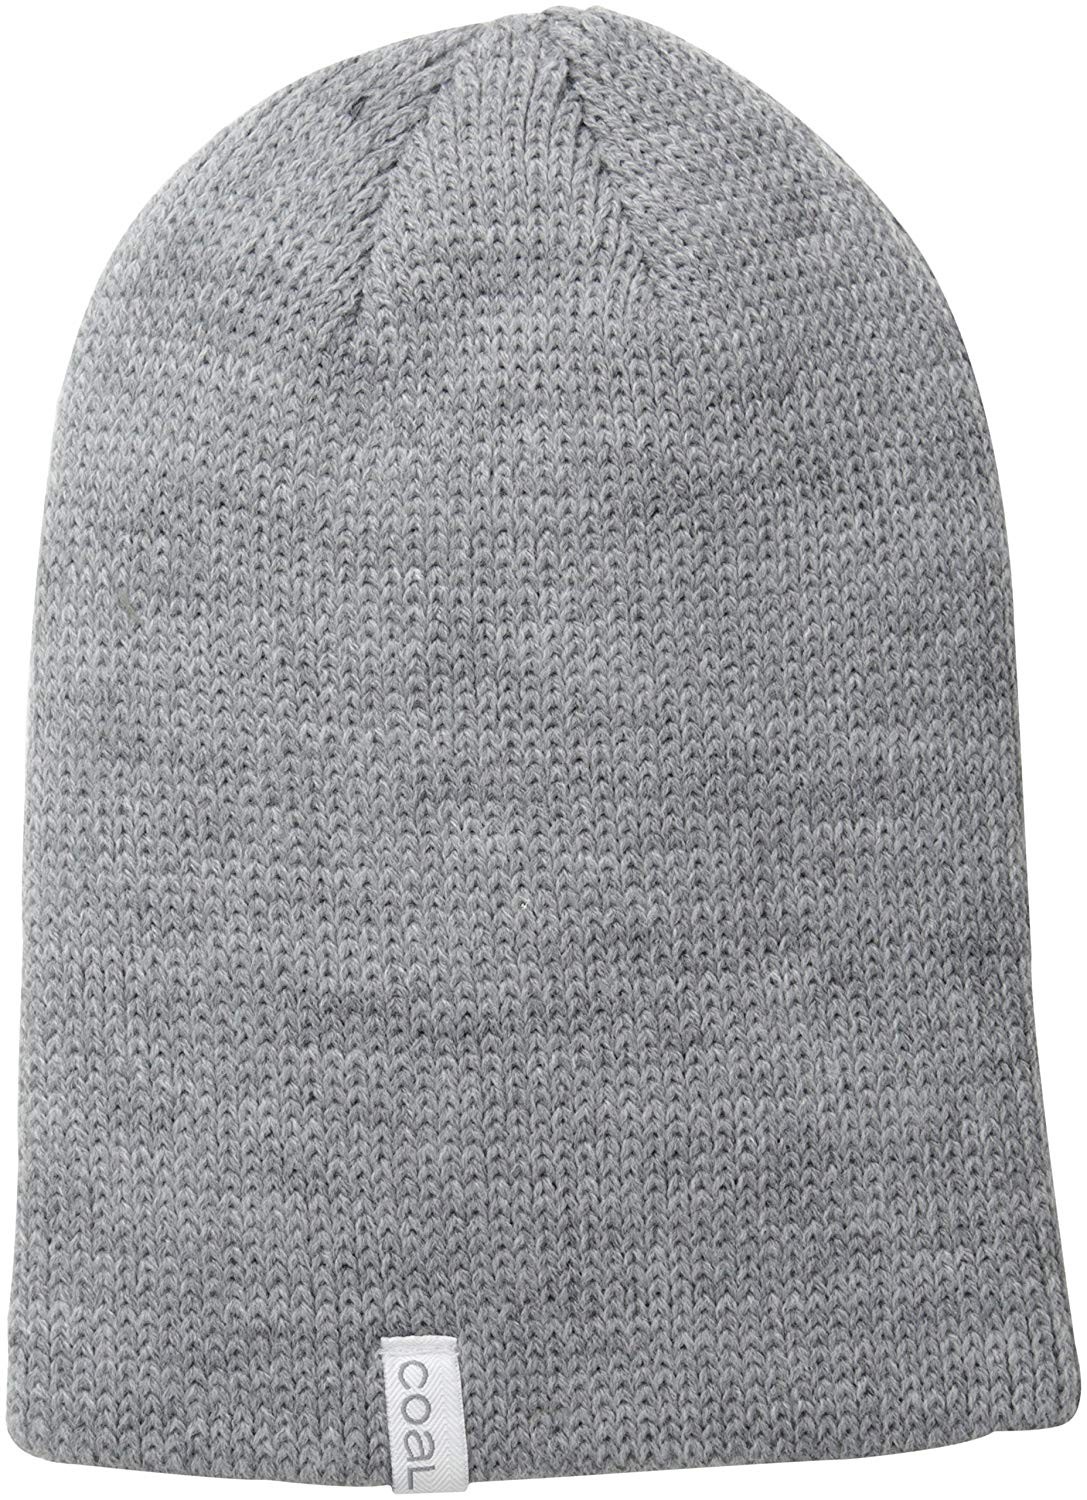 bb5a8c5be03 Get Quotations · Coal The Frena Solid Fine Knit Beanie Hat